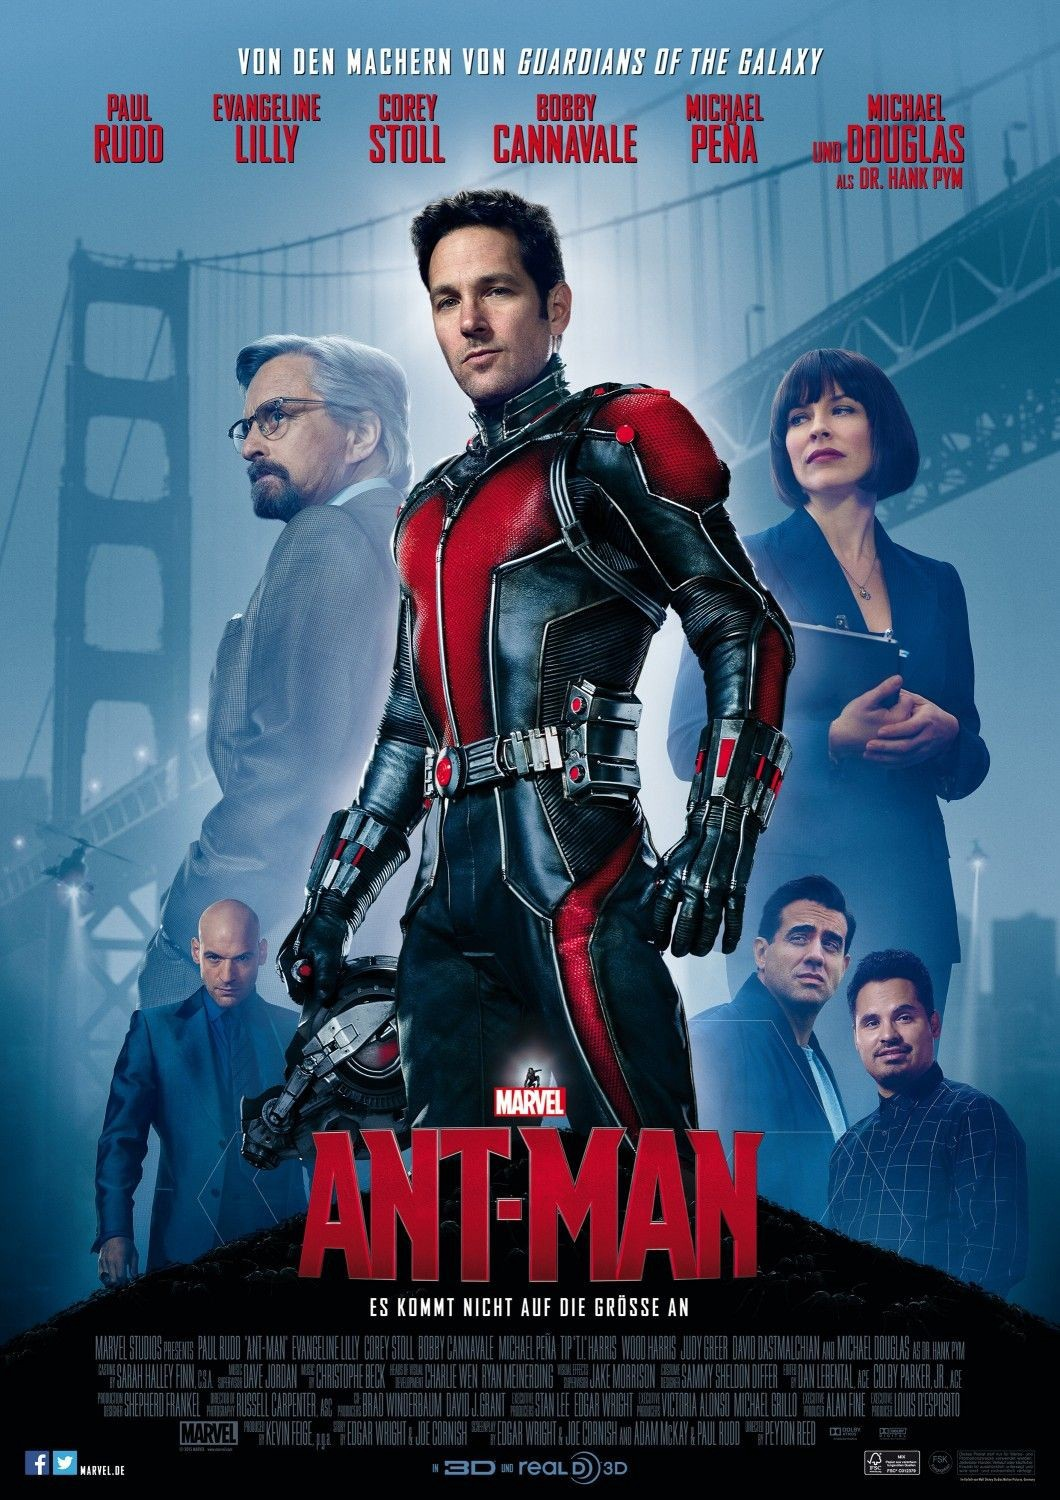 WaTch fullMoVie ||(Ant-Man) 2015 | Ant-Man : FuLL_MoVies